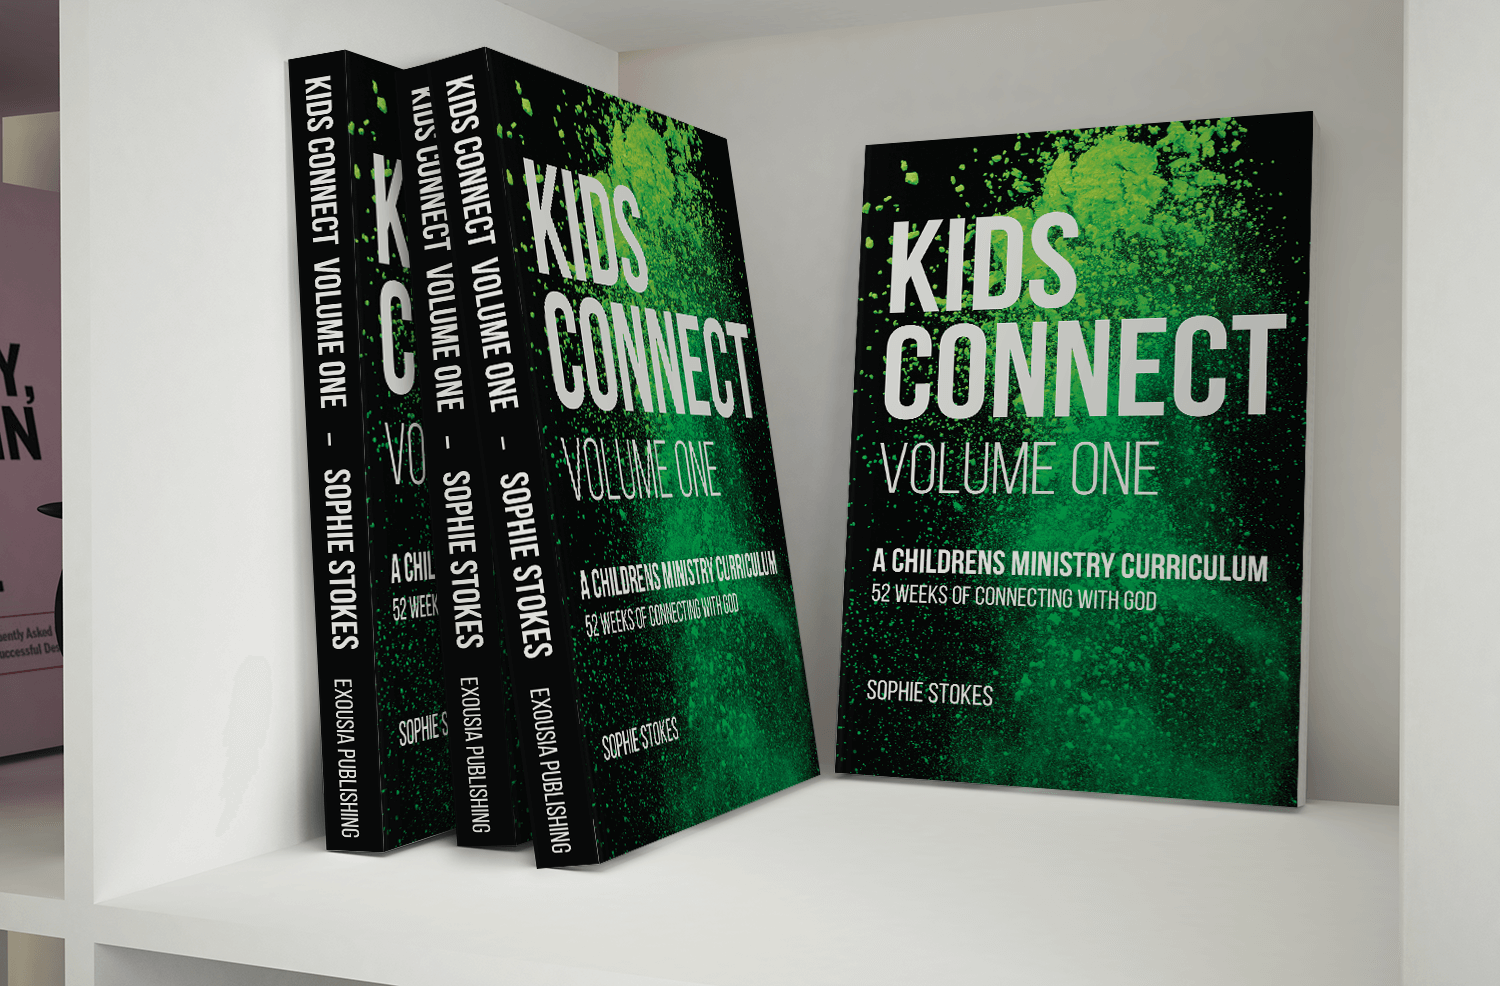 Kids Connect Volume One - Book cover